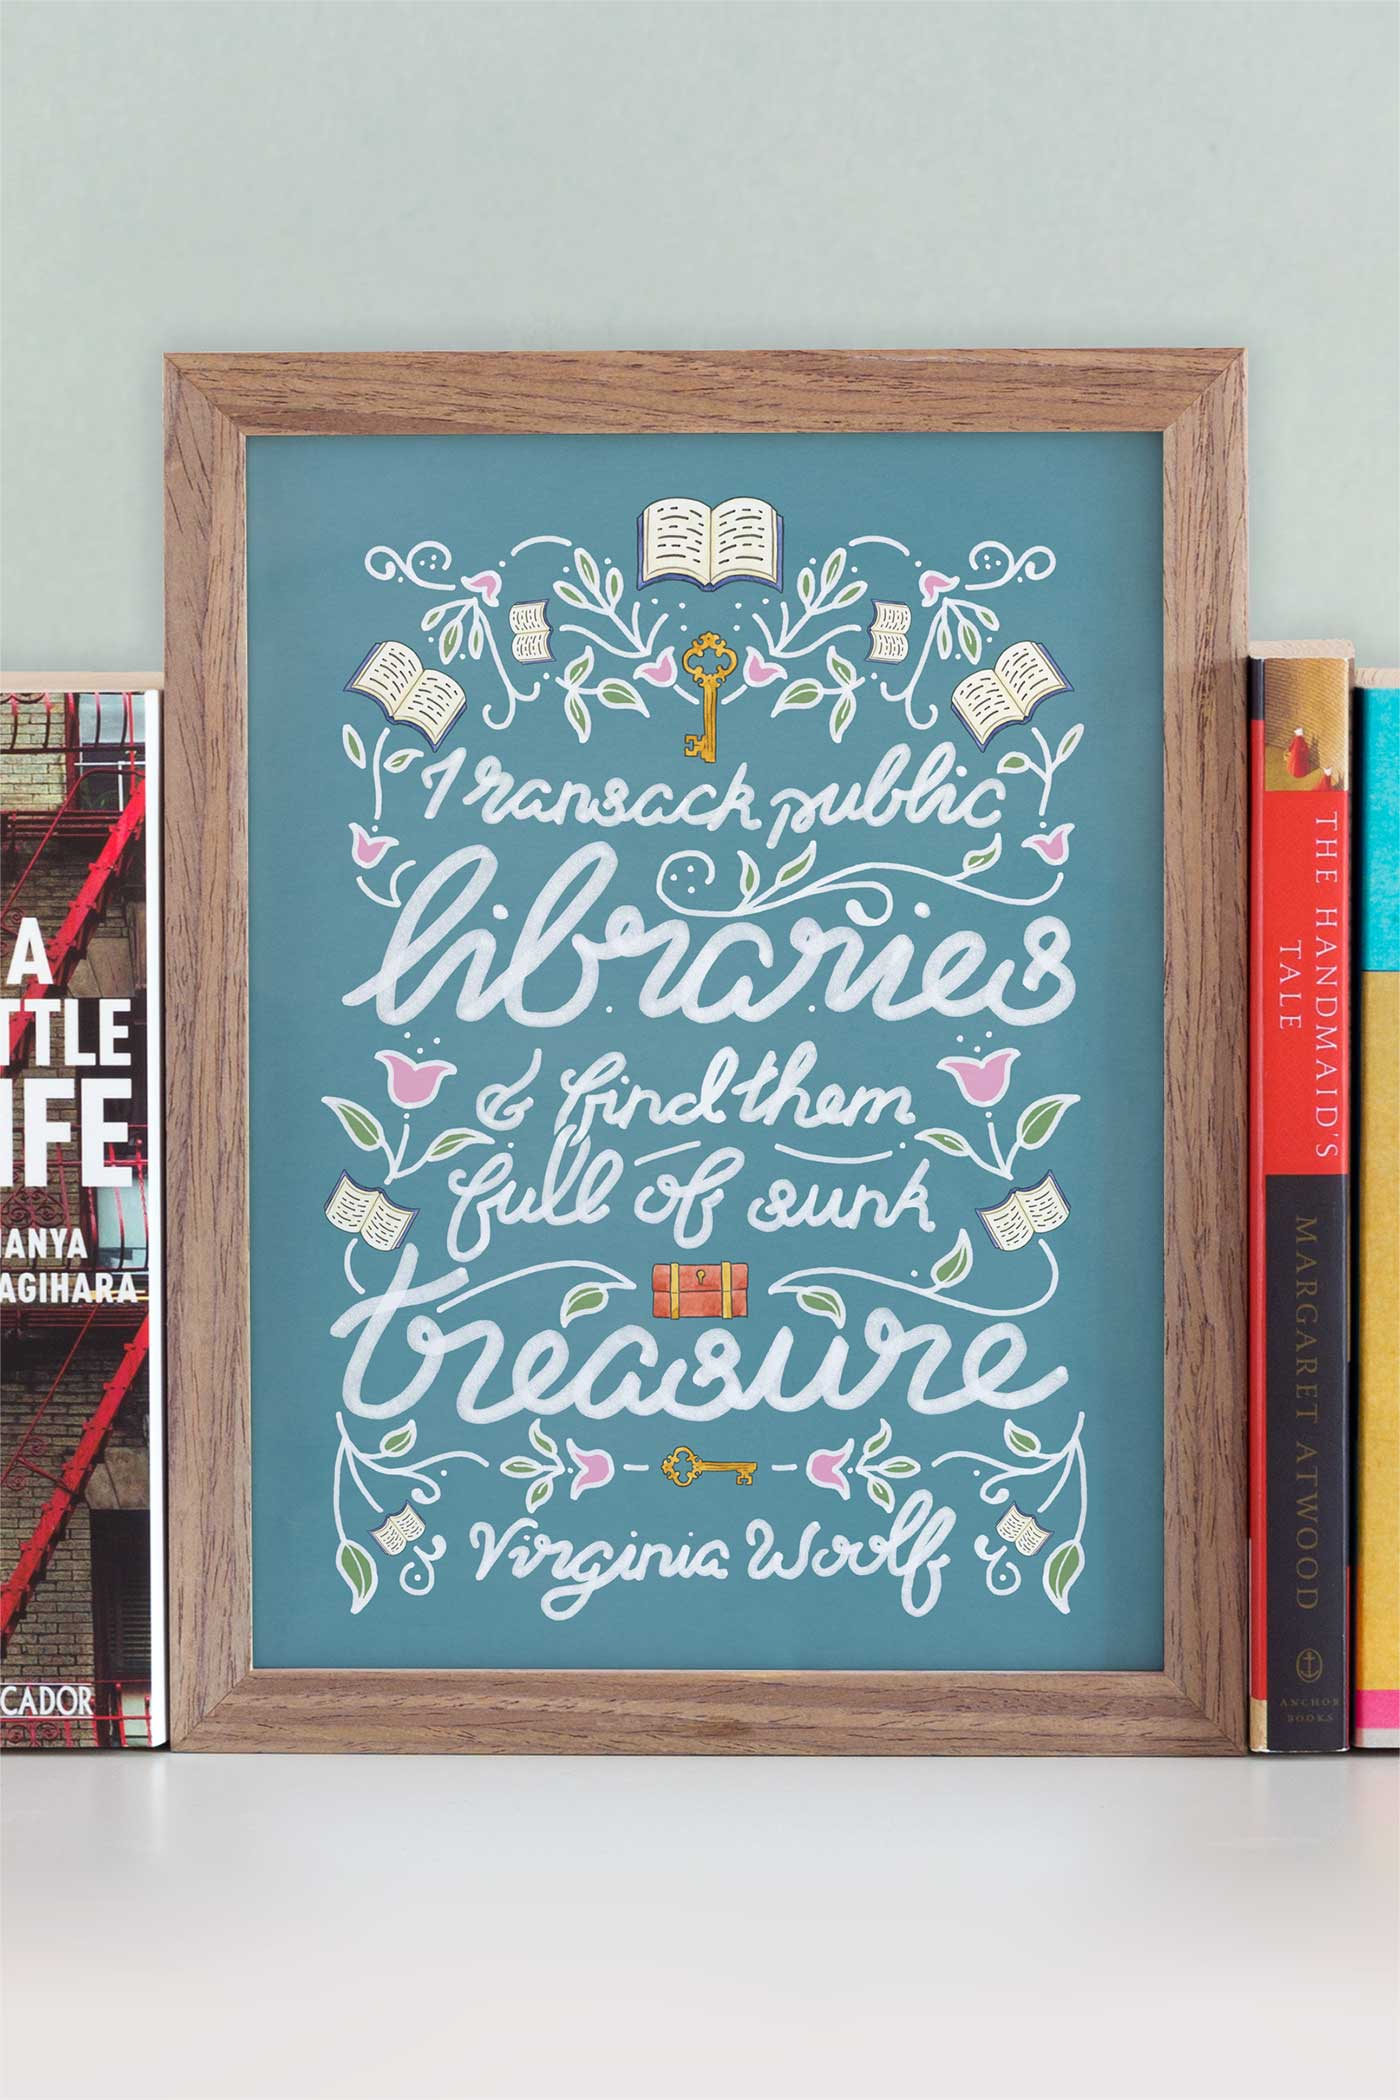 """I ransack public libraries, and find them full of sunk treasure"" - Virginia Woolf Quote Illustrated Art Print"